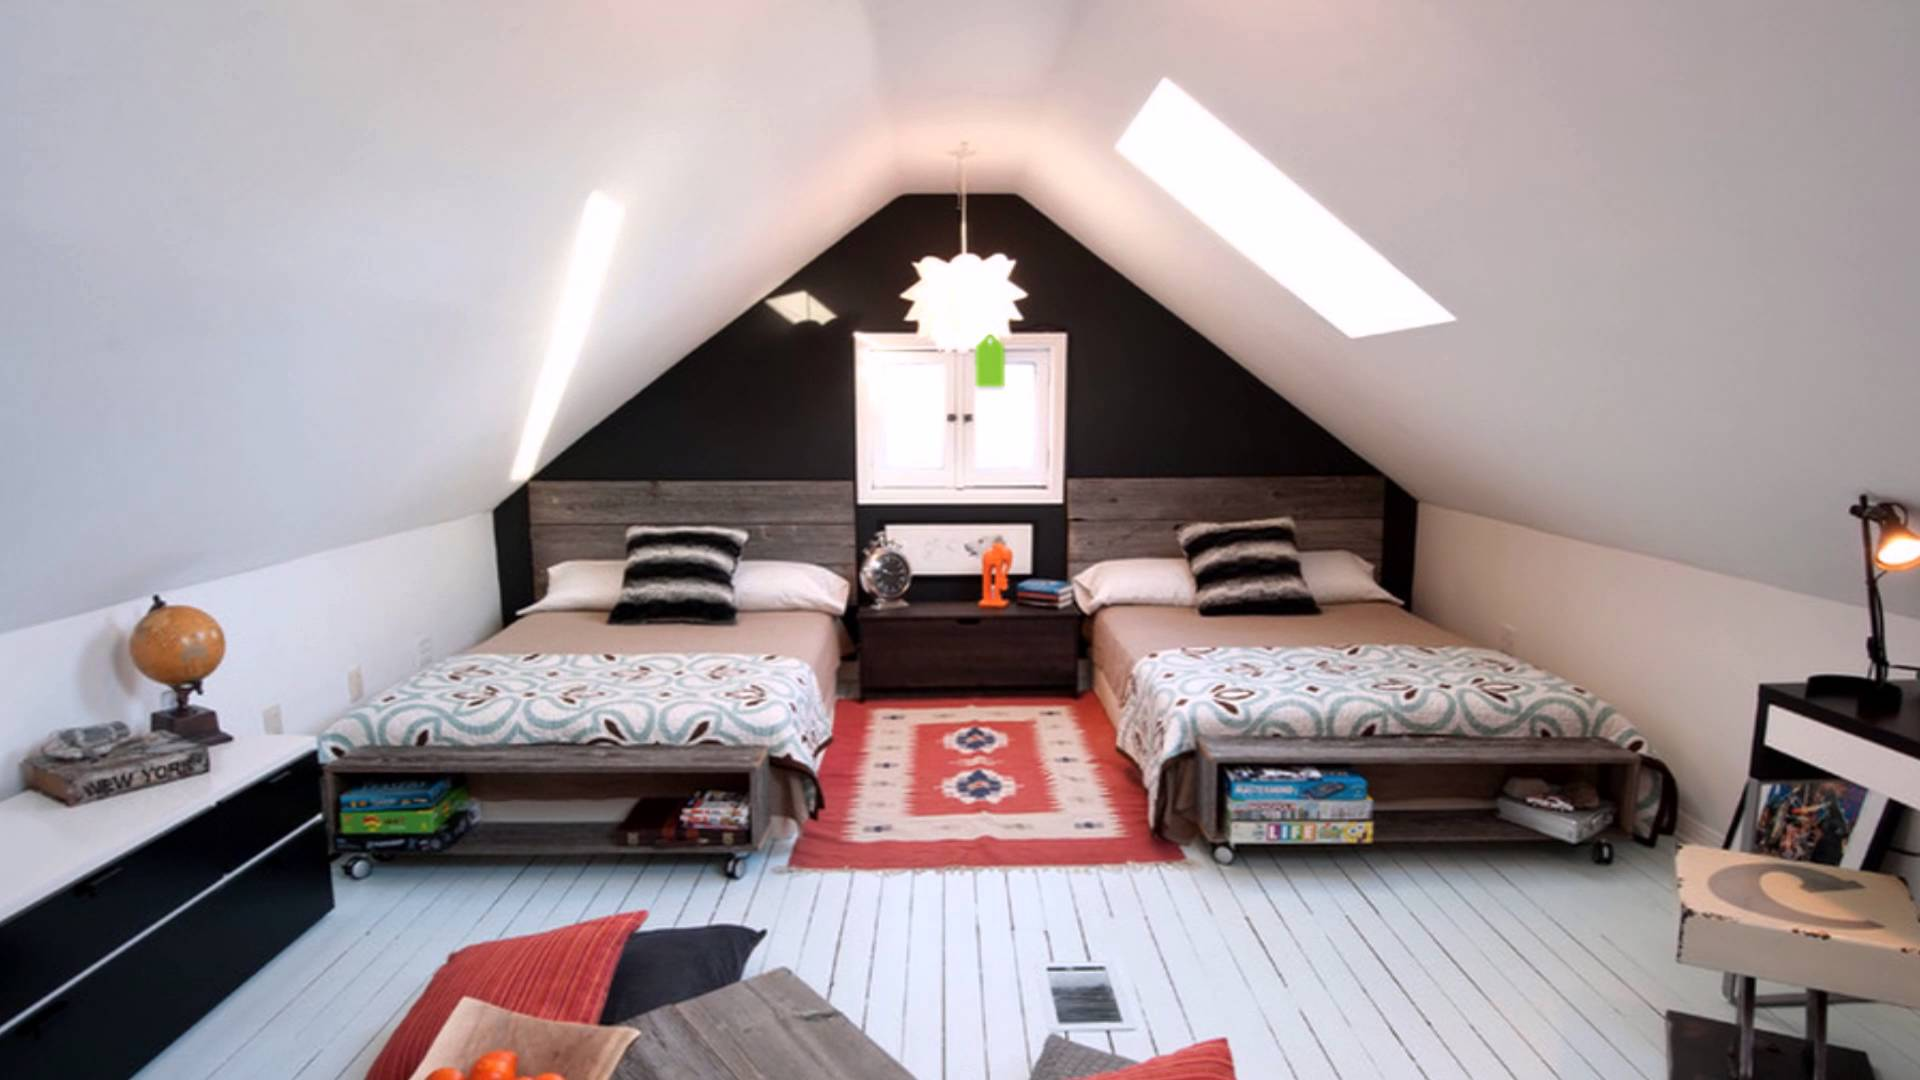 Ideas For Small Attic Bedrooms Bedroom Half Bath Low Ceiling Remodeling Attics Inexpensive To Finish Finished Before And After Stairs Storage Apppie Org